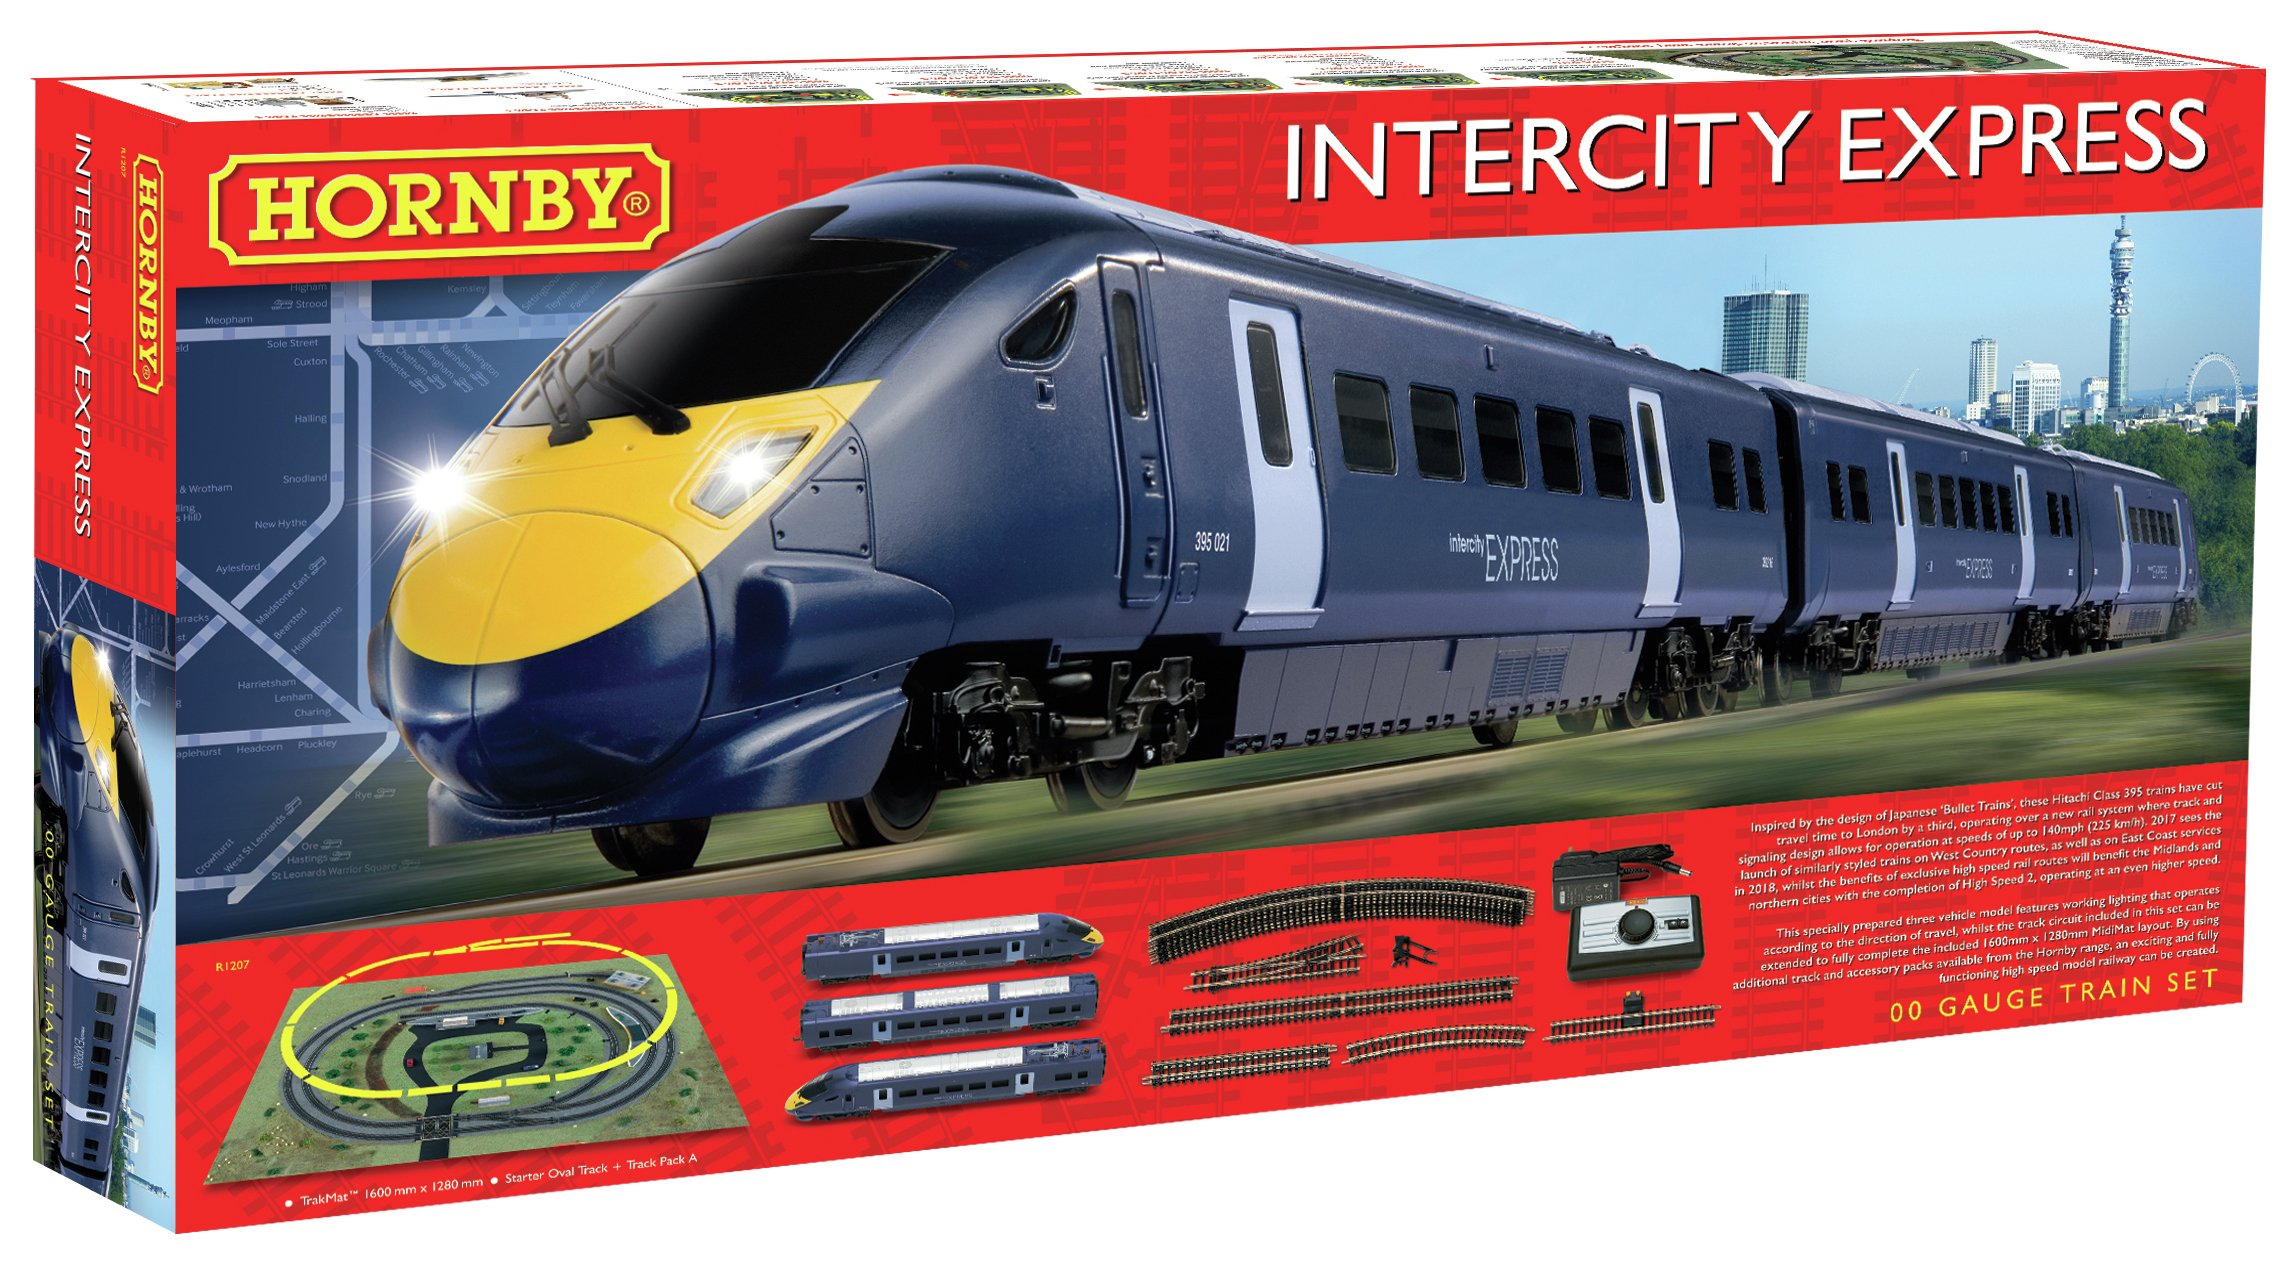 Hornby Intercity Express review